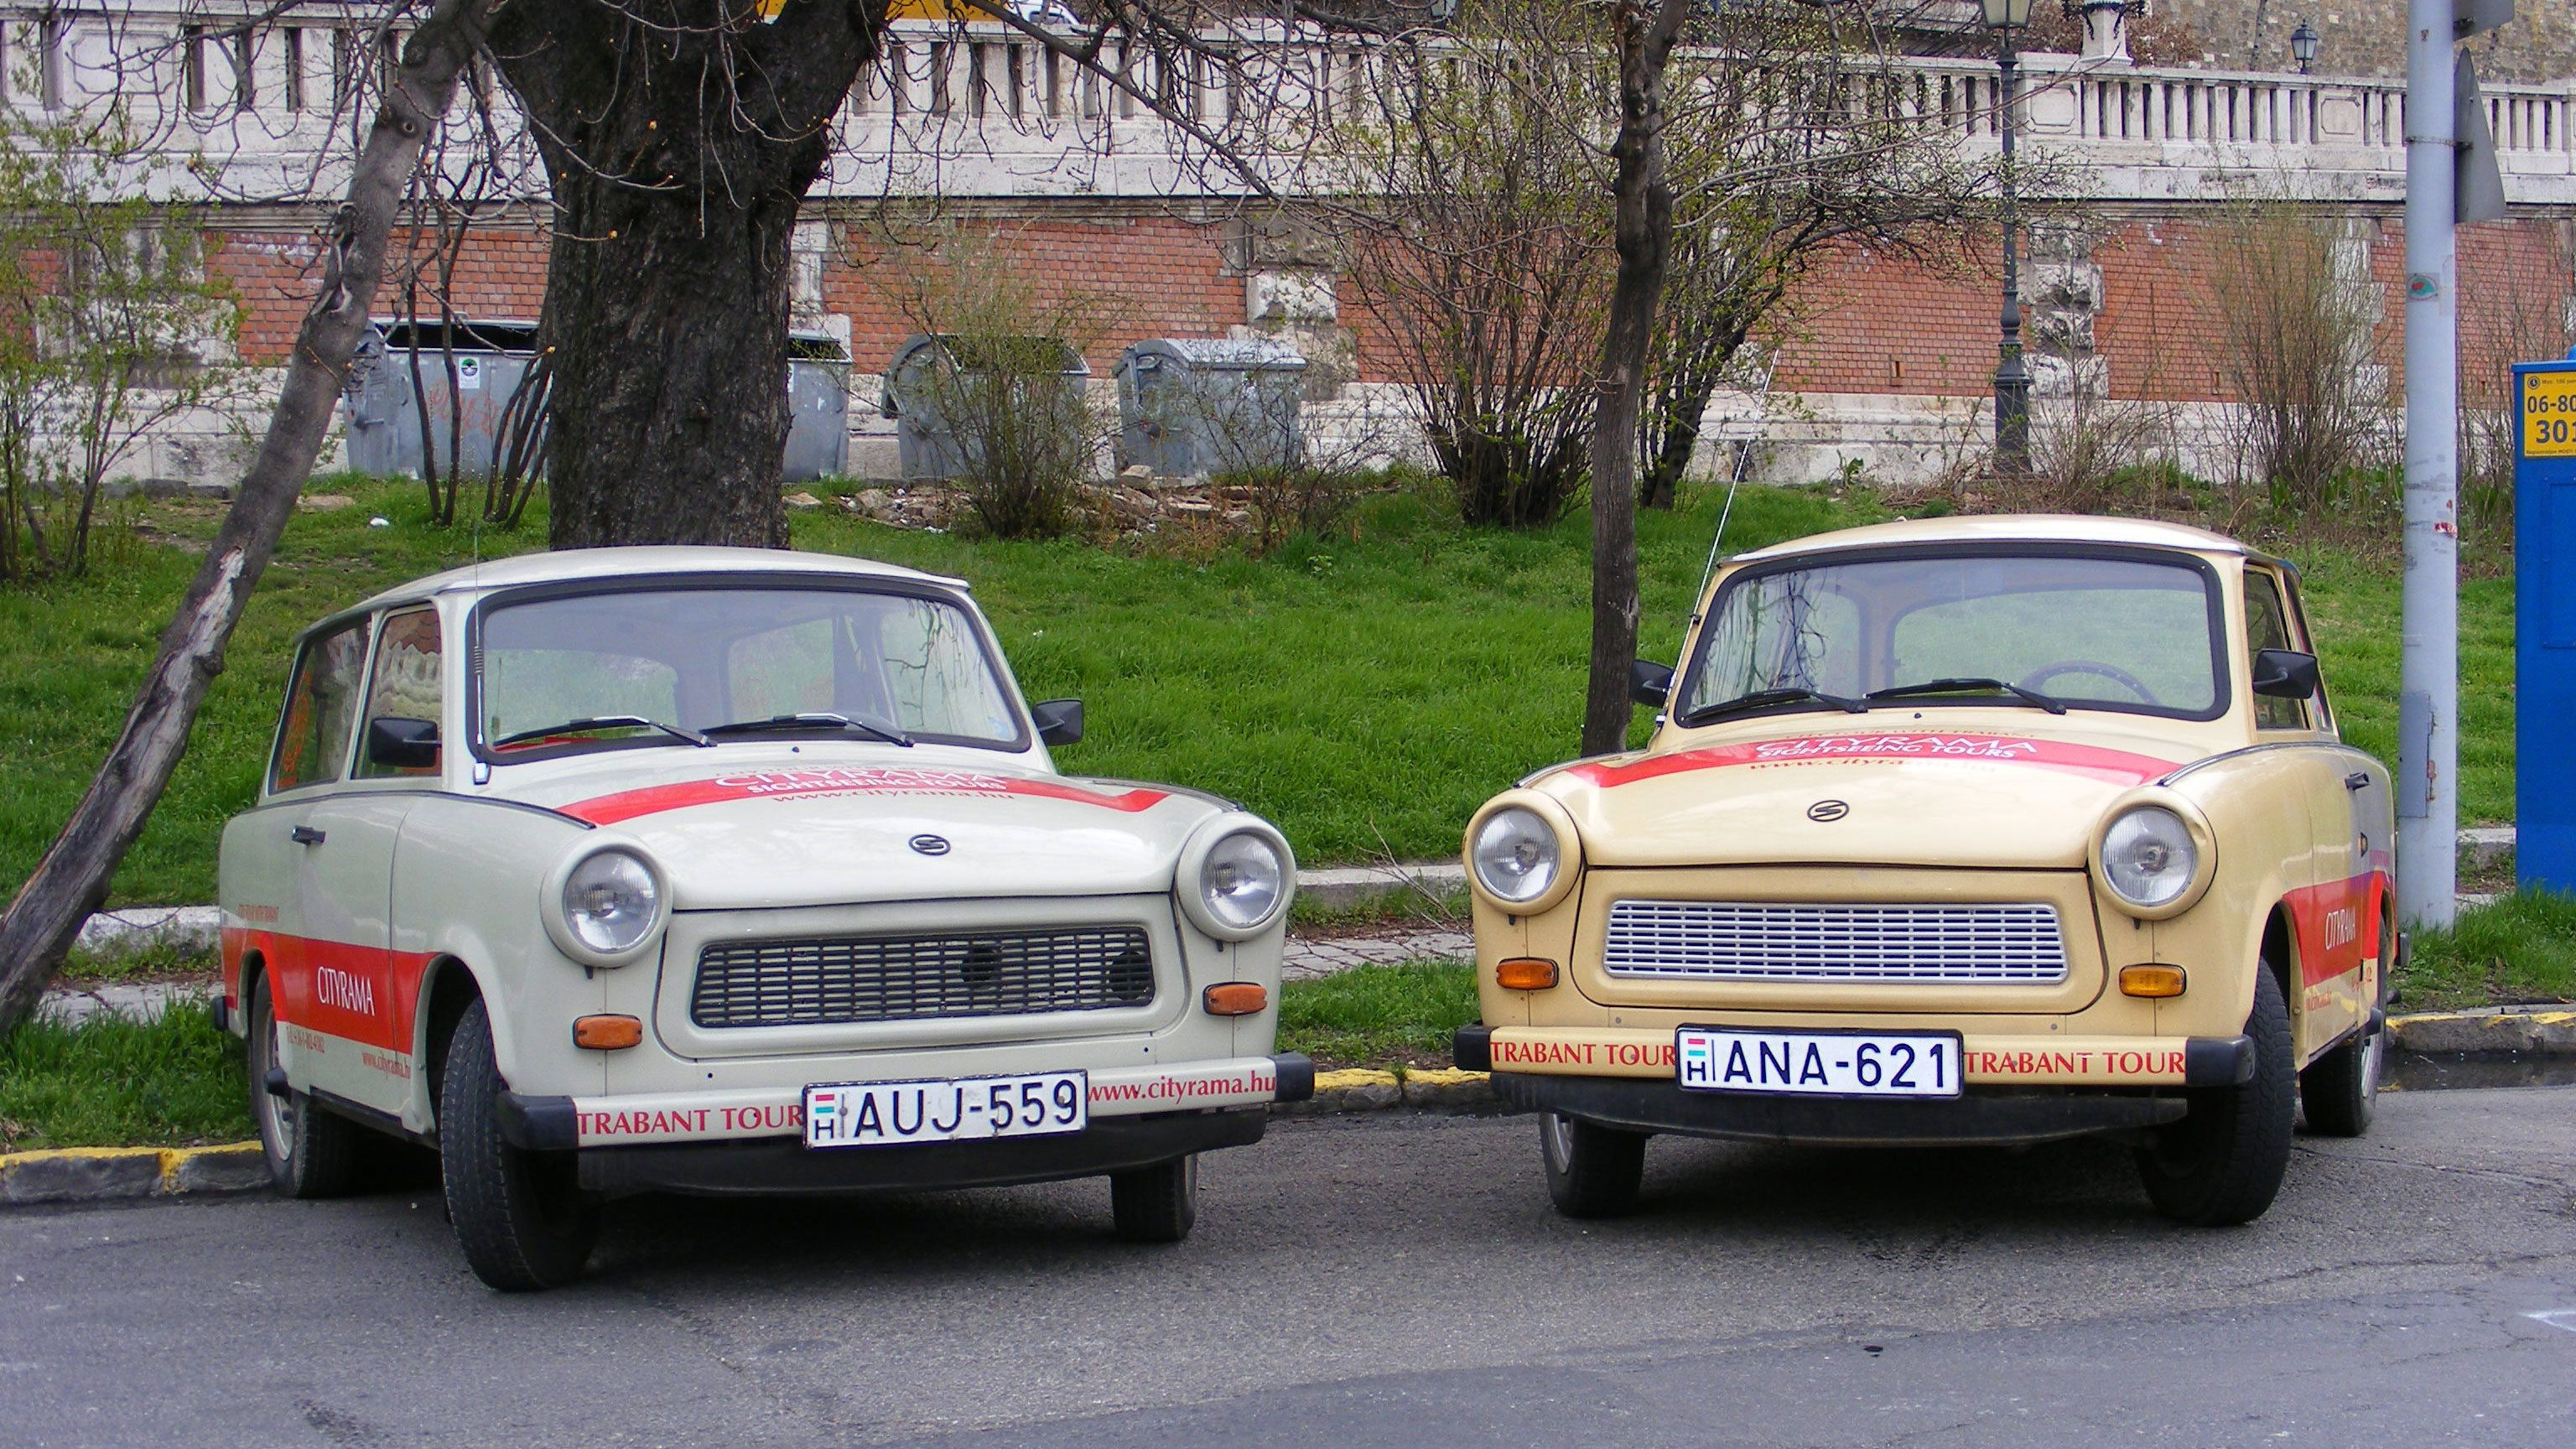 Two parked Trabant Cars parked on the side of the road in Budapest